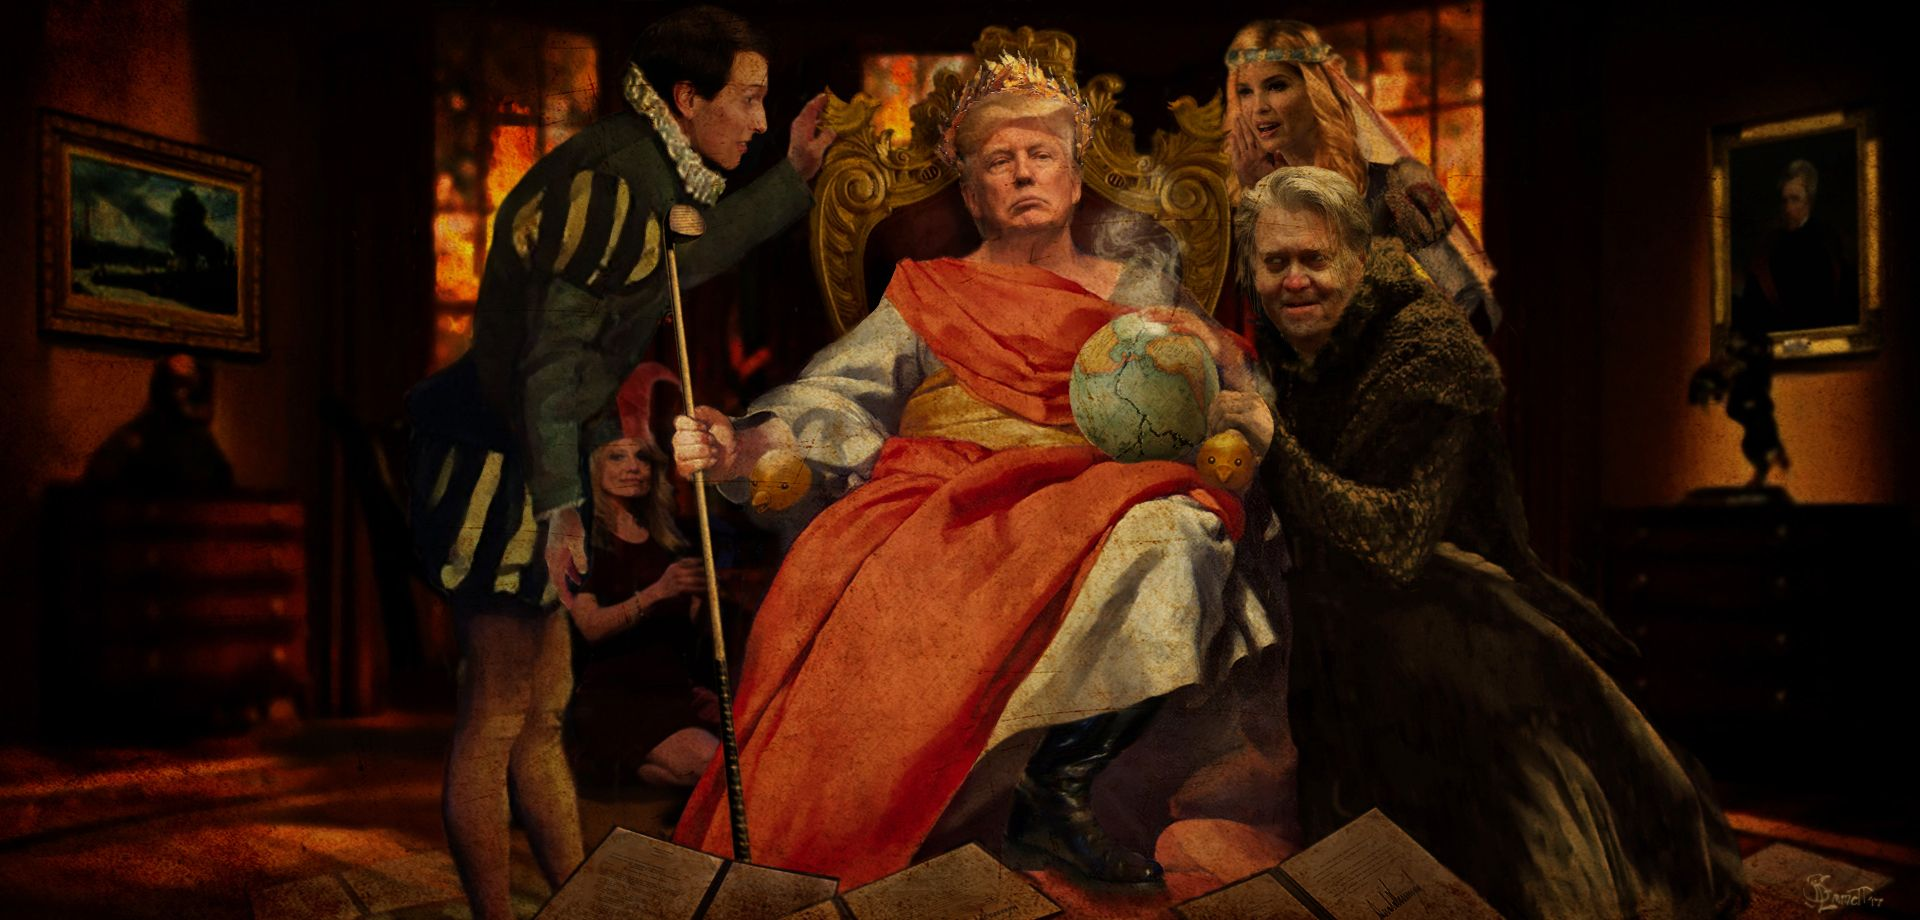 The Madness Of King Donald This Or That Questions Donald Time Magazine